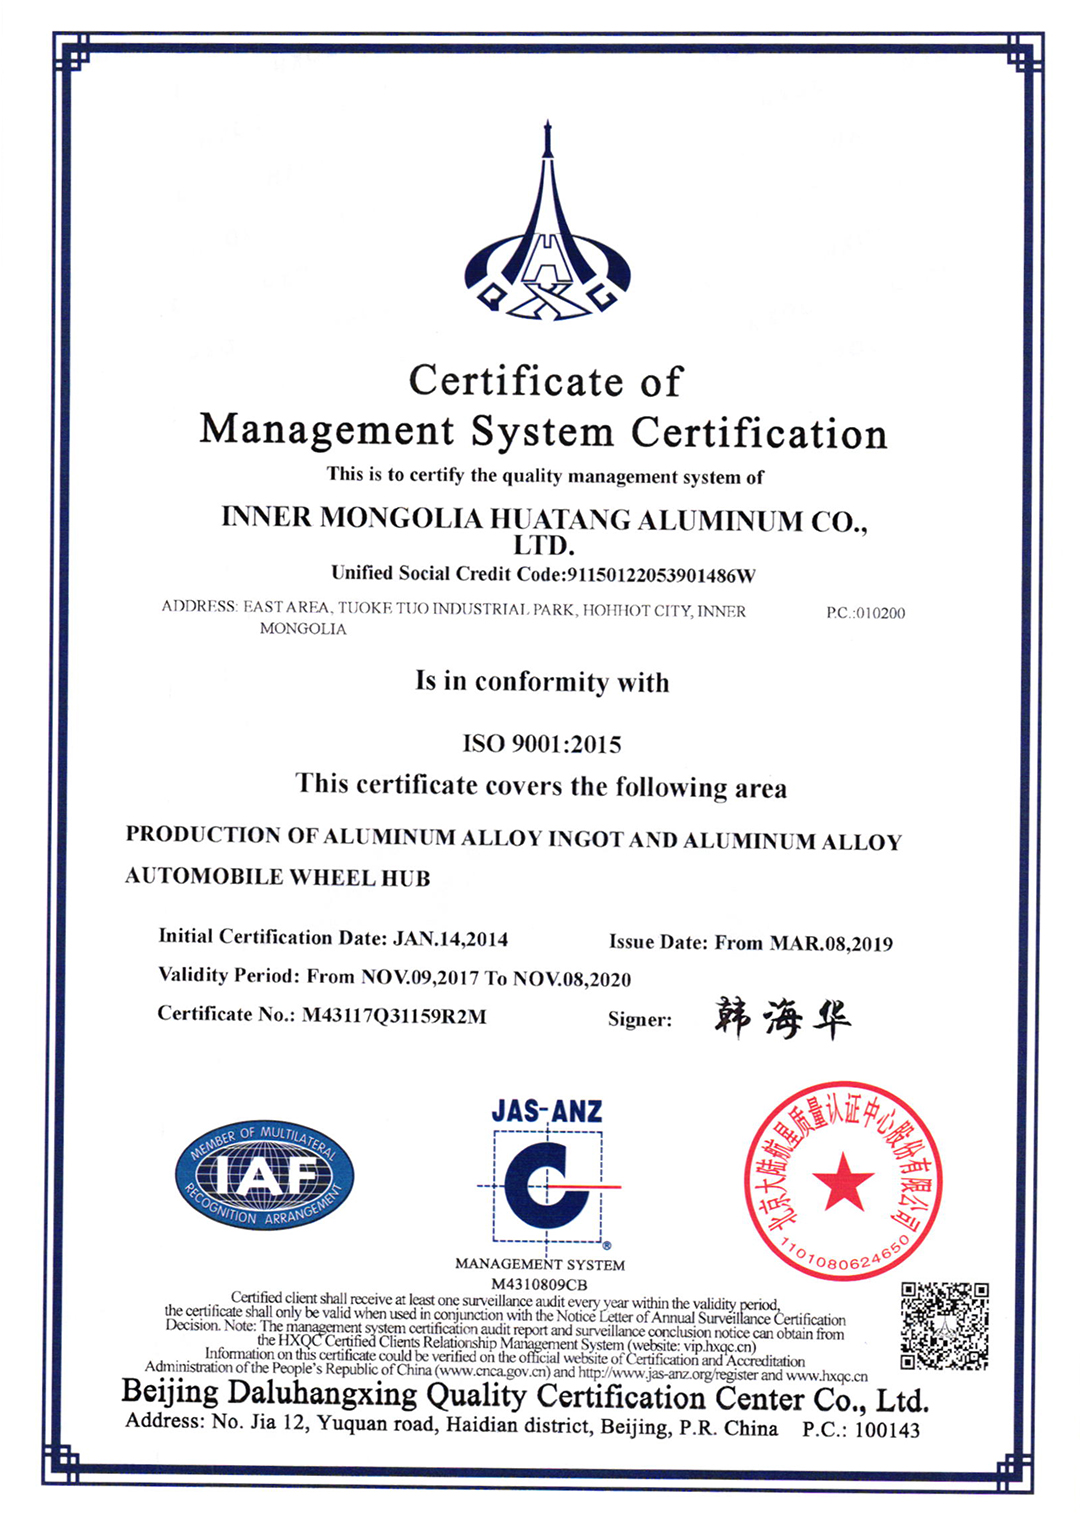 "title='<div style=""text-align:center;""> 	<span style=""font-family:Microsoft YaHei;font-size:14px;color:#5A5A5A;""><span style=""color:#5A5A5A;"">Certificate of Management System Certification</span></span>  </div>'"